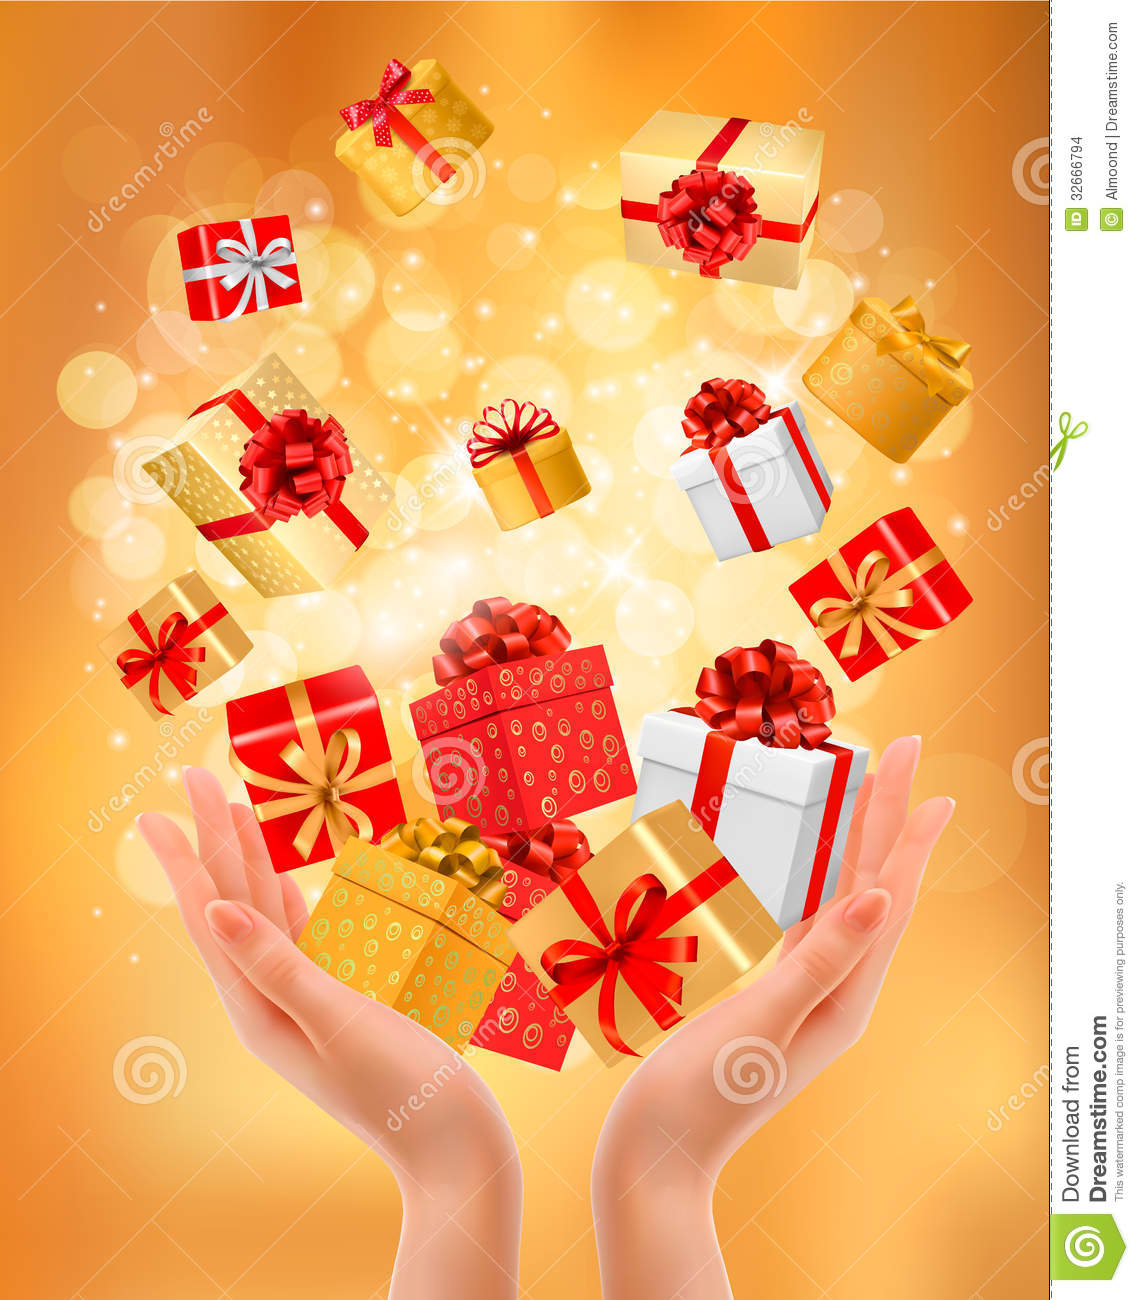 holiday background with hands holding gift boxes  stock